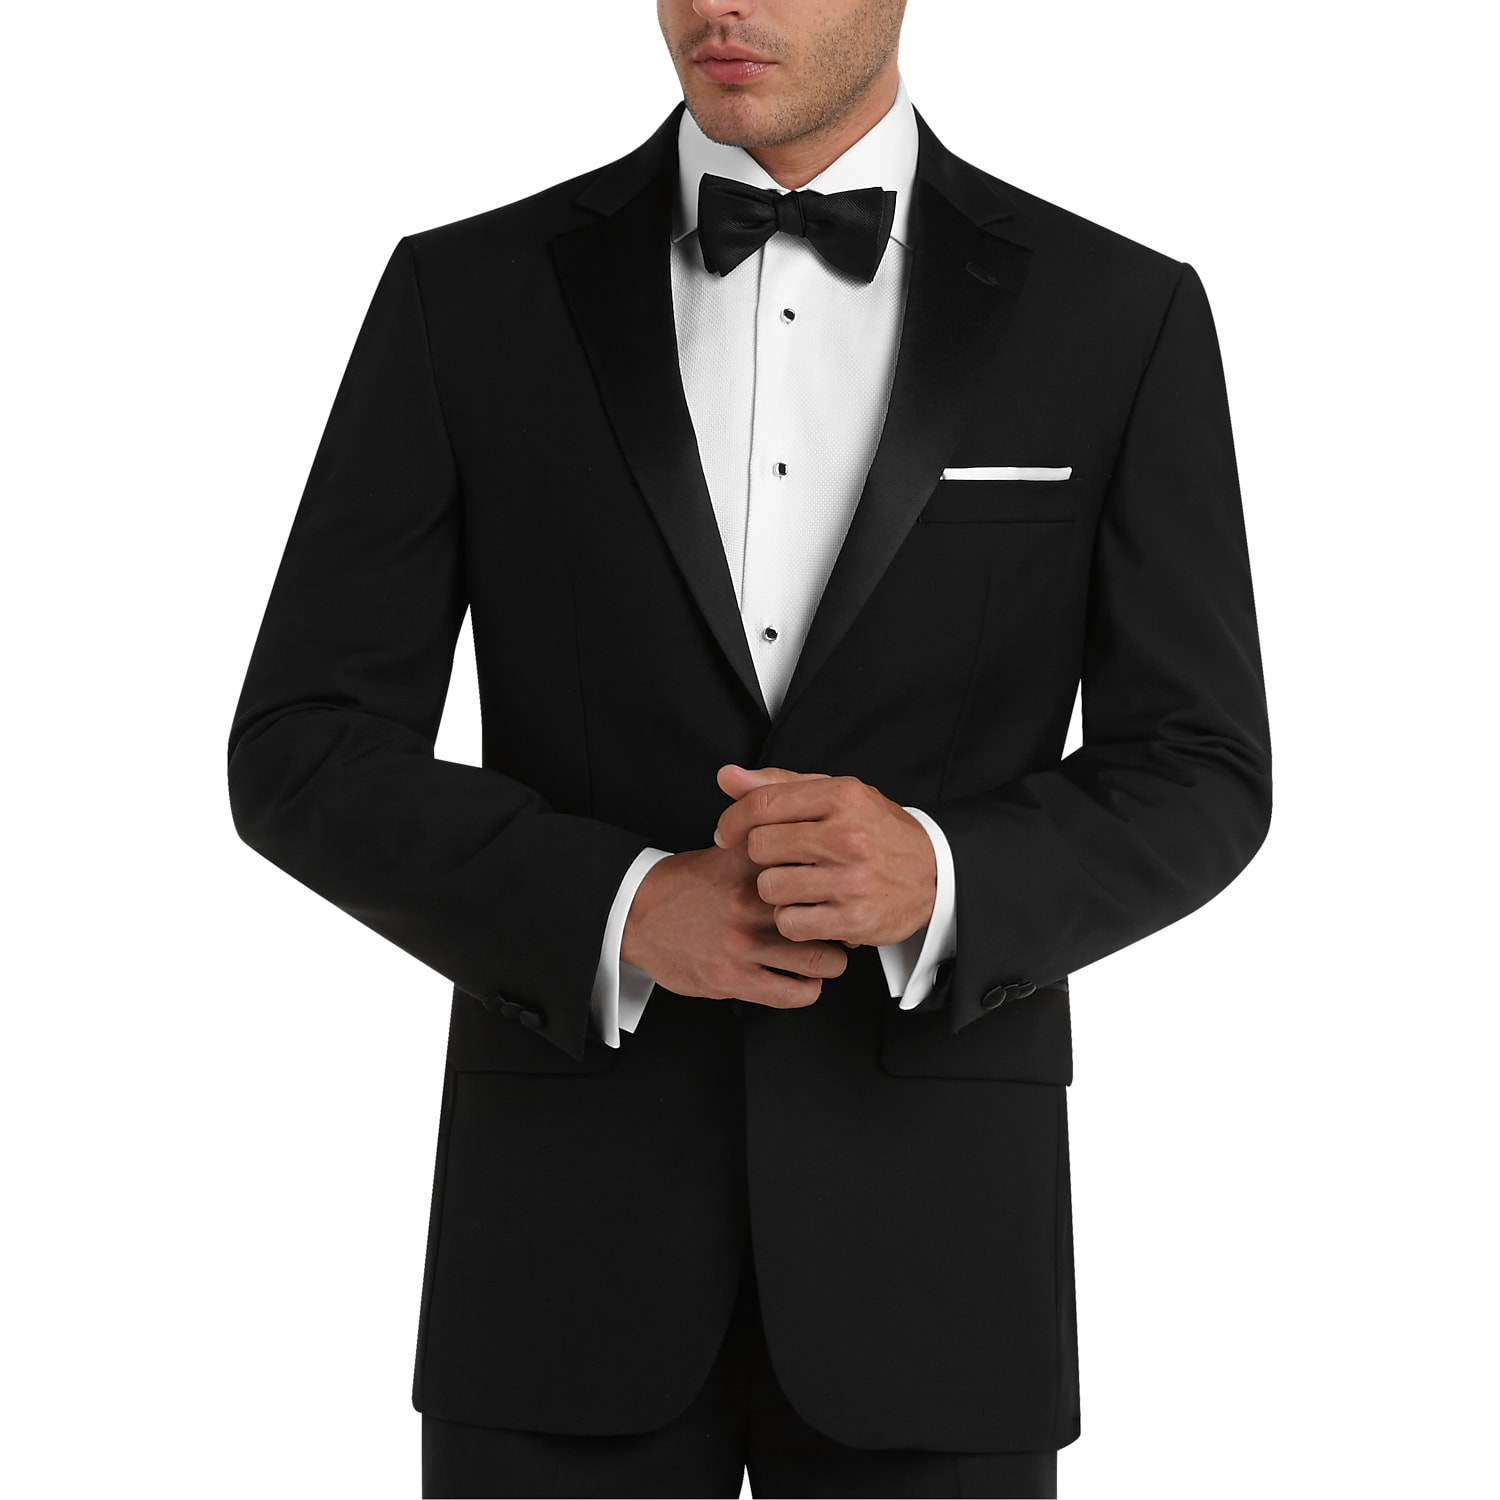 Men\'s Tuxedos, Black Tie Formal Wear & Attire | Men\'s Wearhouse